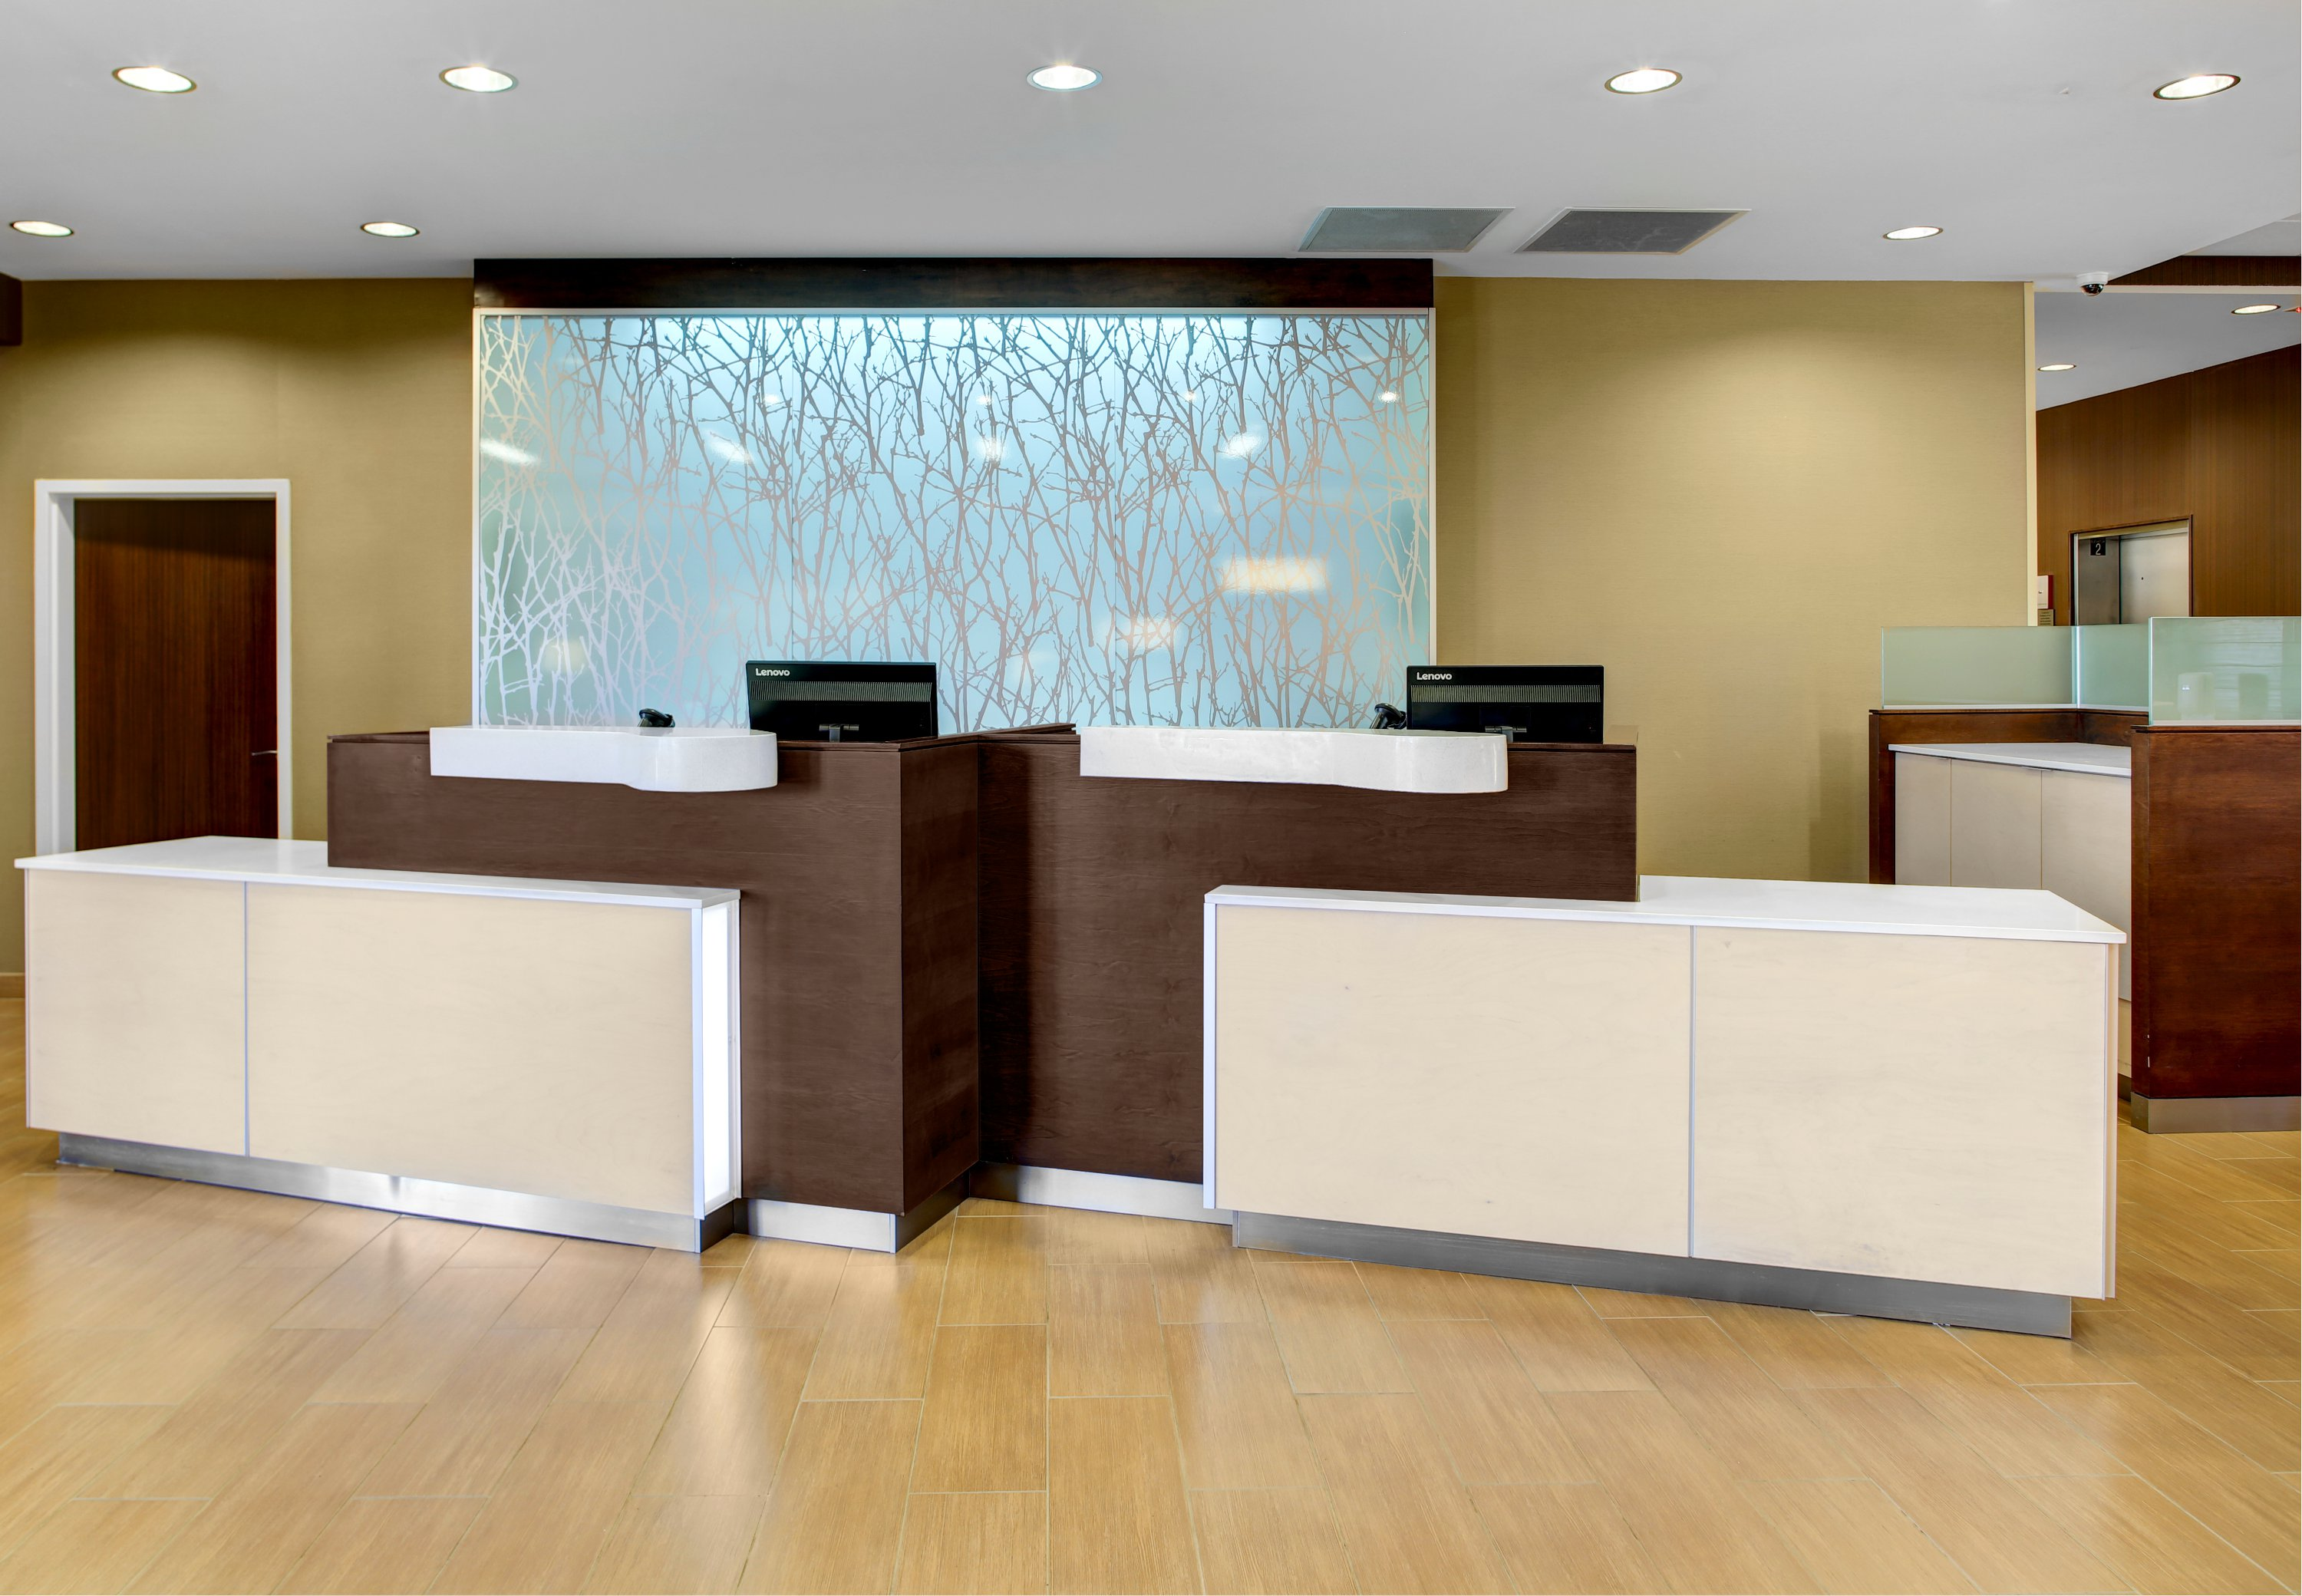 Fairfield Inn & Suites by Marriott Atlanta Stockbridge image 2